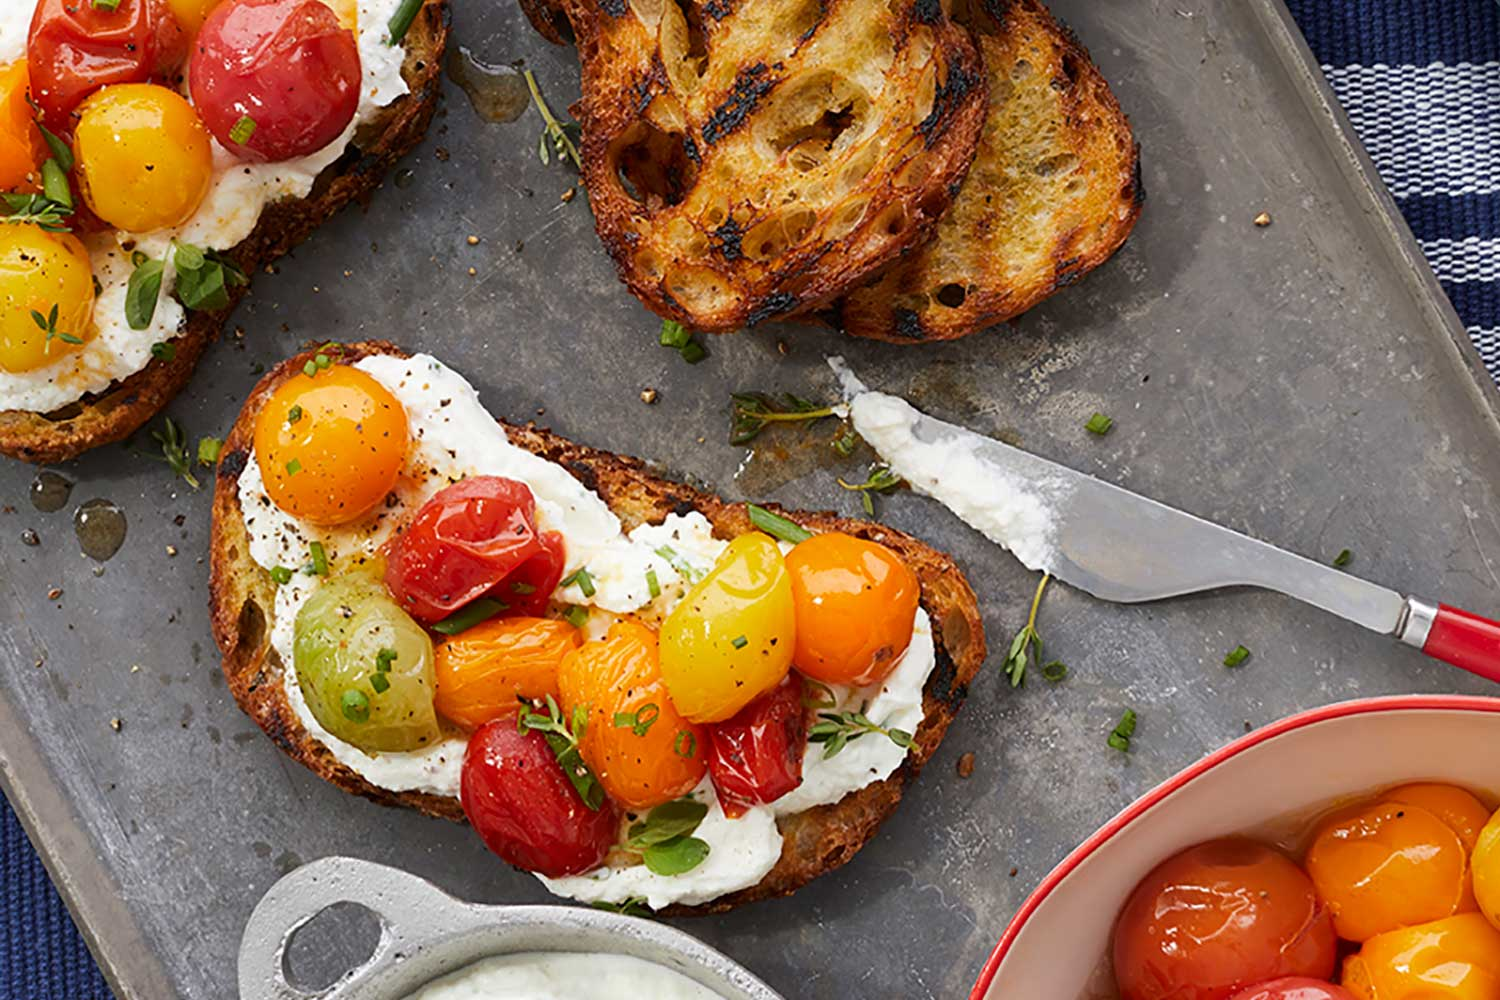 Roasted Cherry Tomatoes & Home-Smoked Ricotta on Grilled Toast